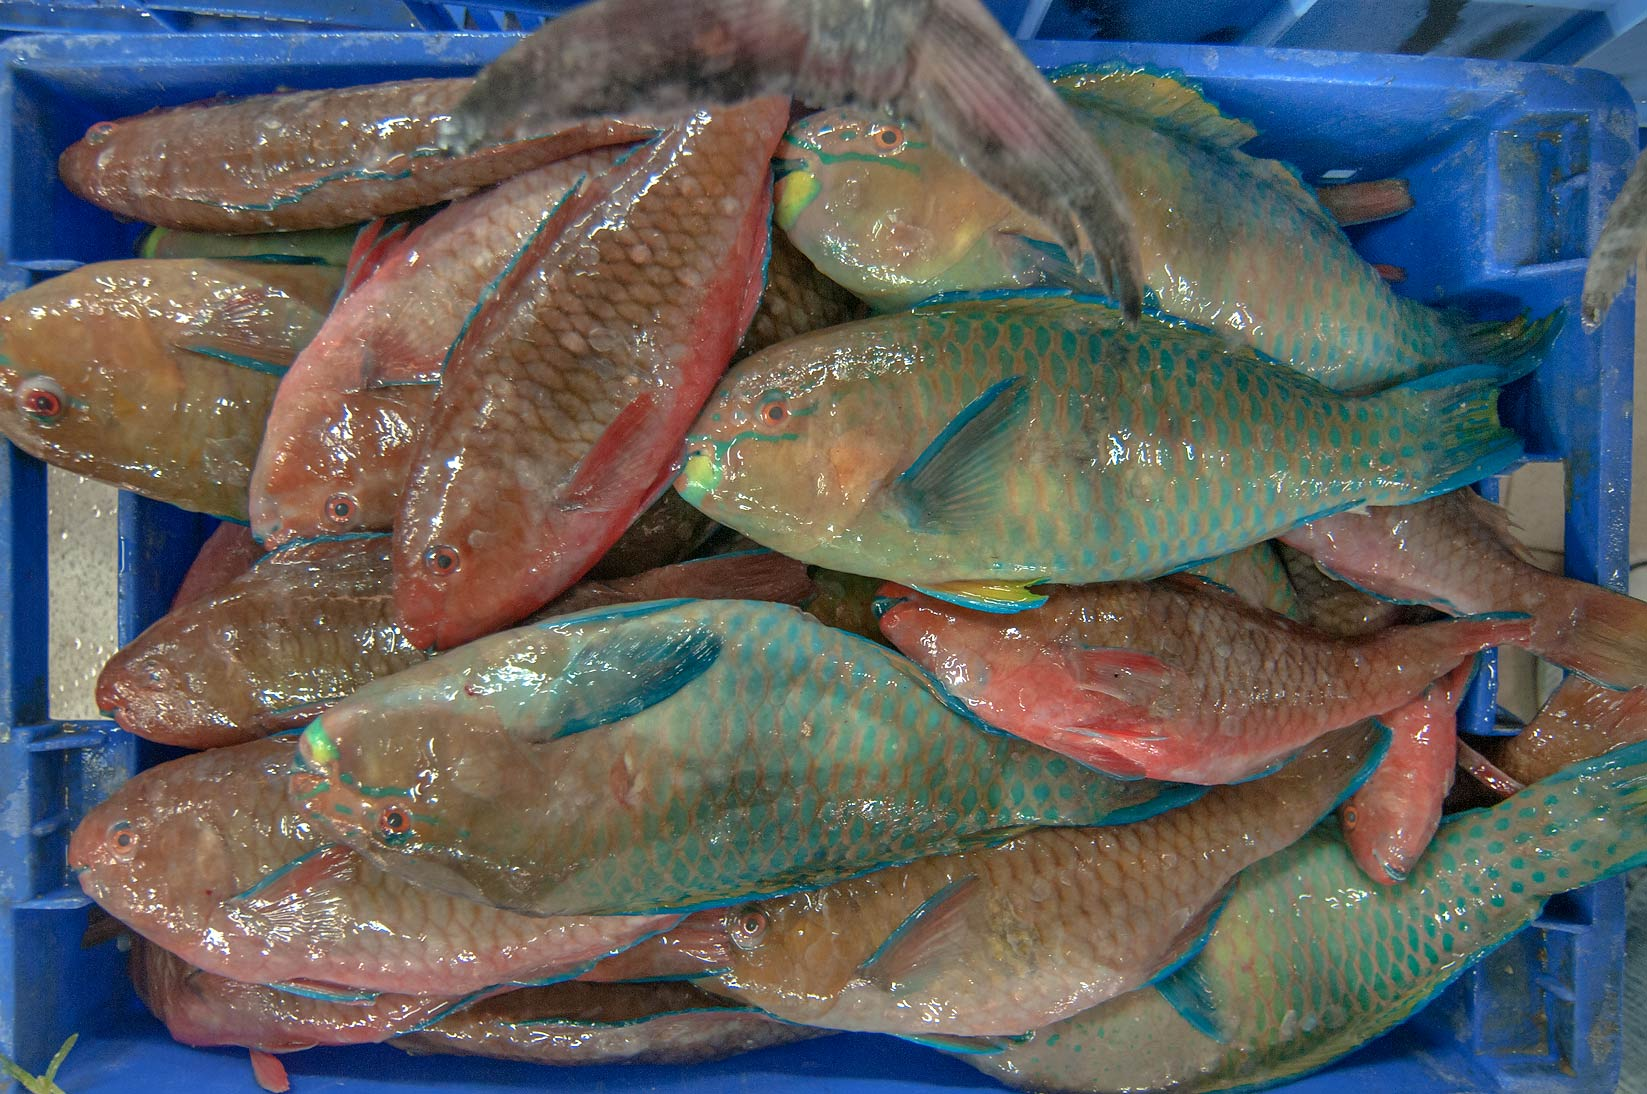 Parrotfish (Gain, Chlorurus sordidus) in Central Fish Market, Abu Hamour area. Doha, Qatar